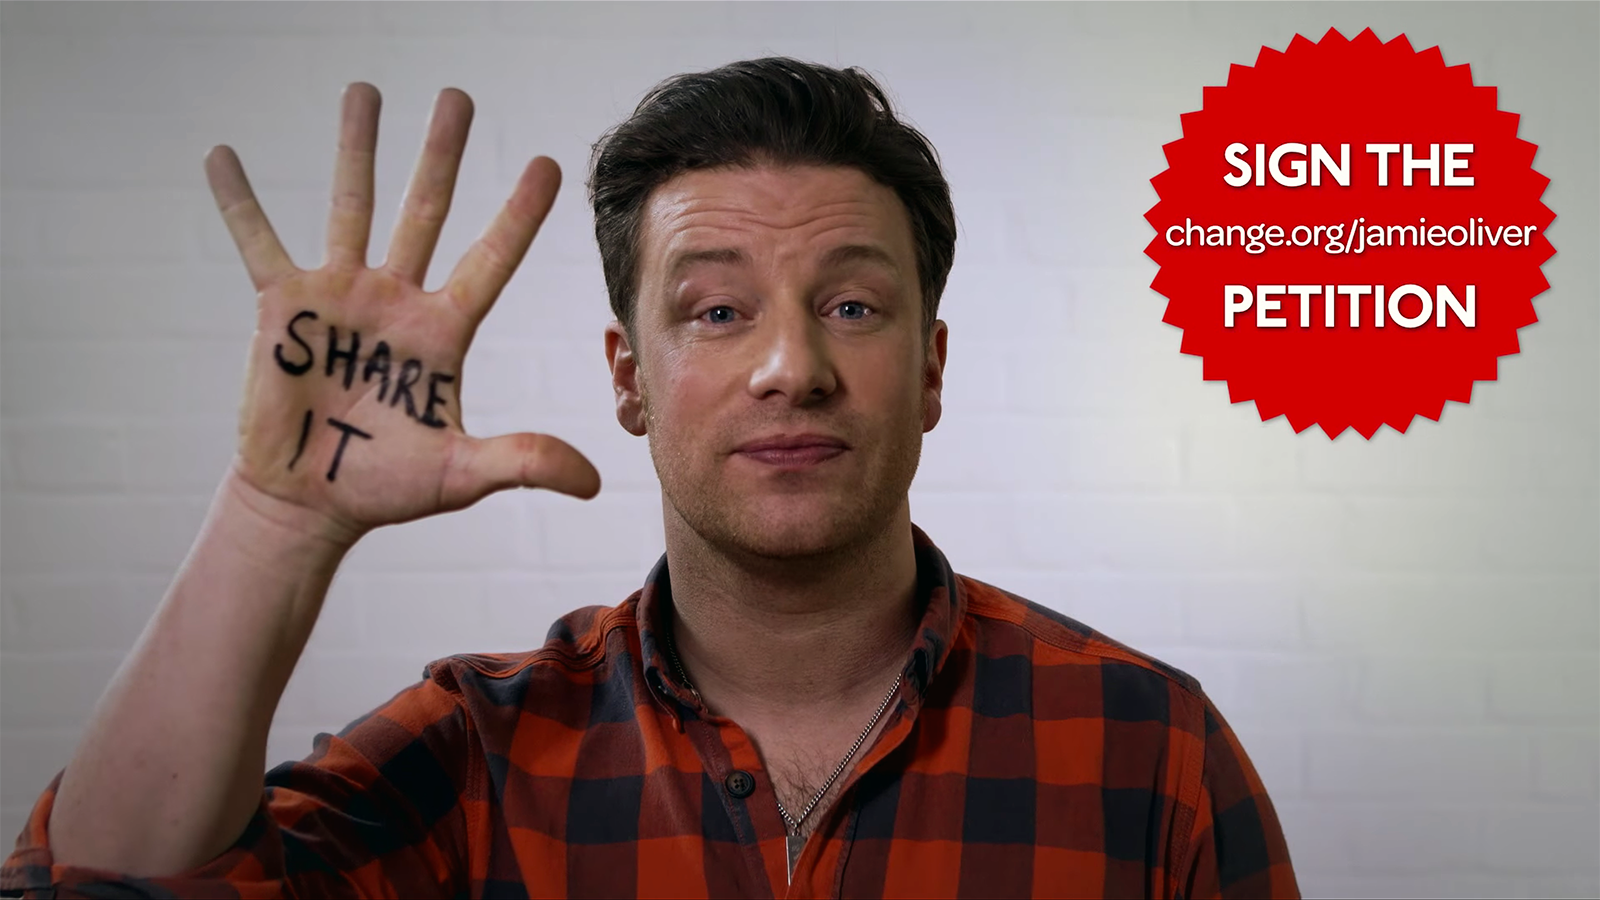 Jamie Oliver's Petition Screenshot